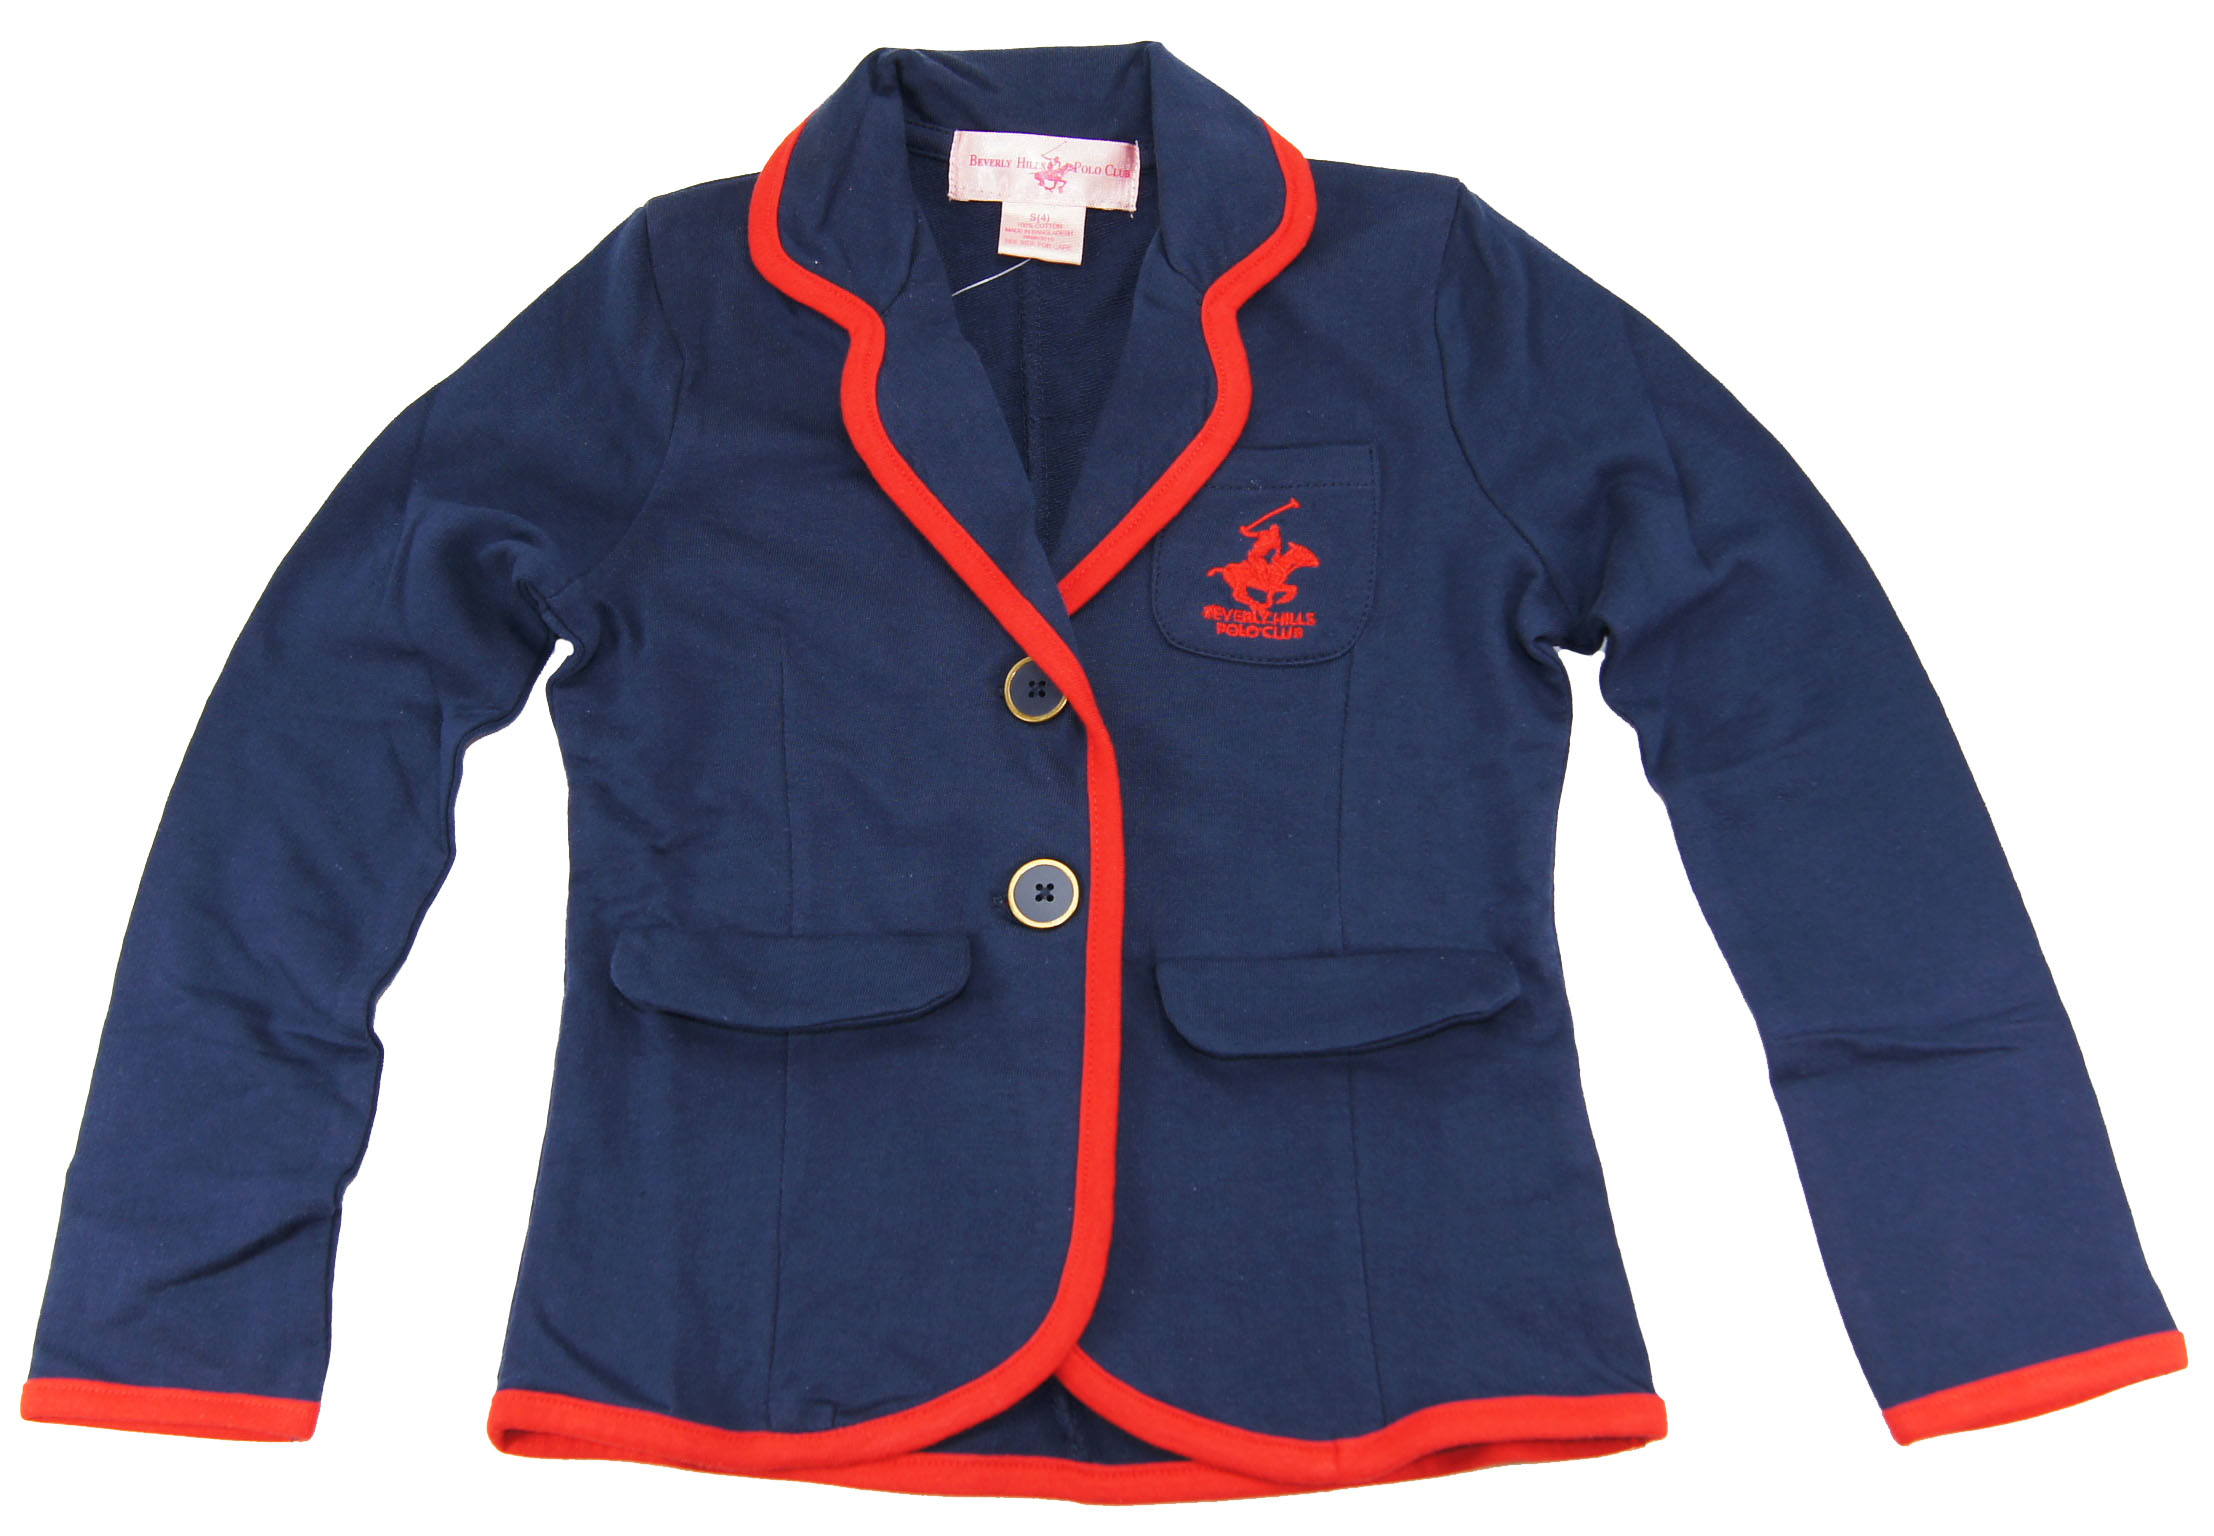 Beverly Hills Polo Club Beverly  Hills Polo Club Girls Navy French Terry Blazer size 2T 3T 4T 4 5/6 6X at Sears.com